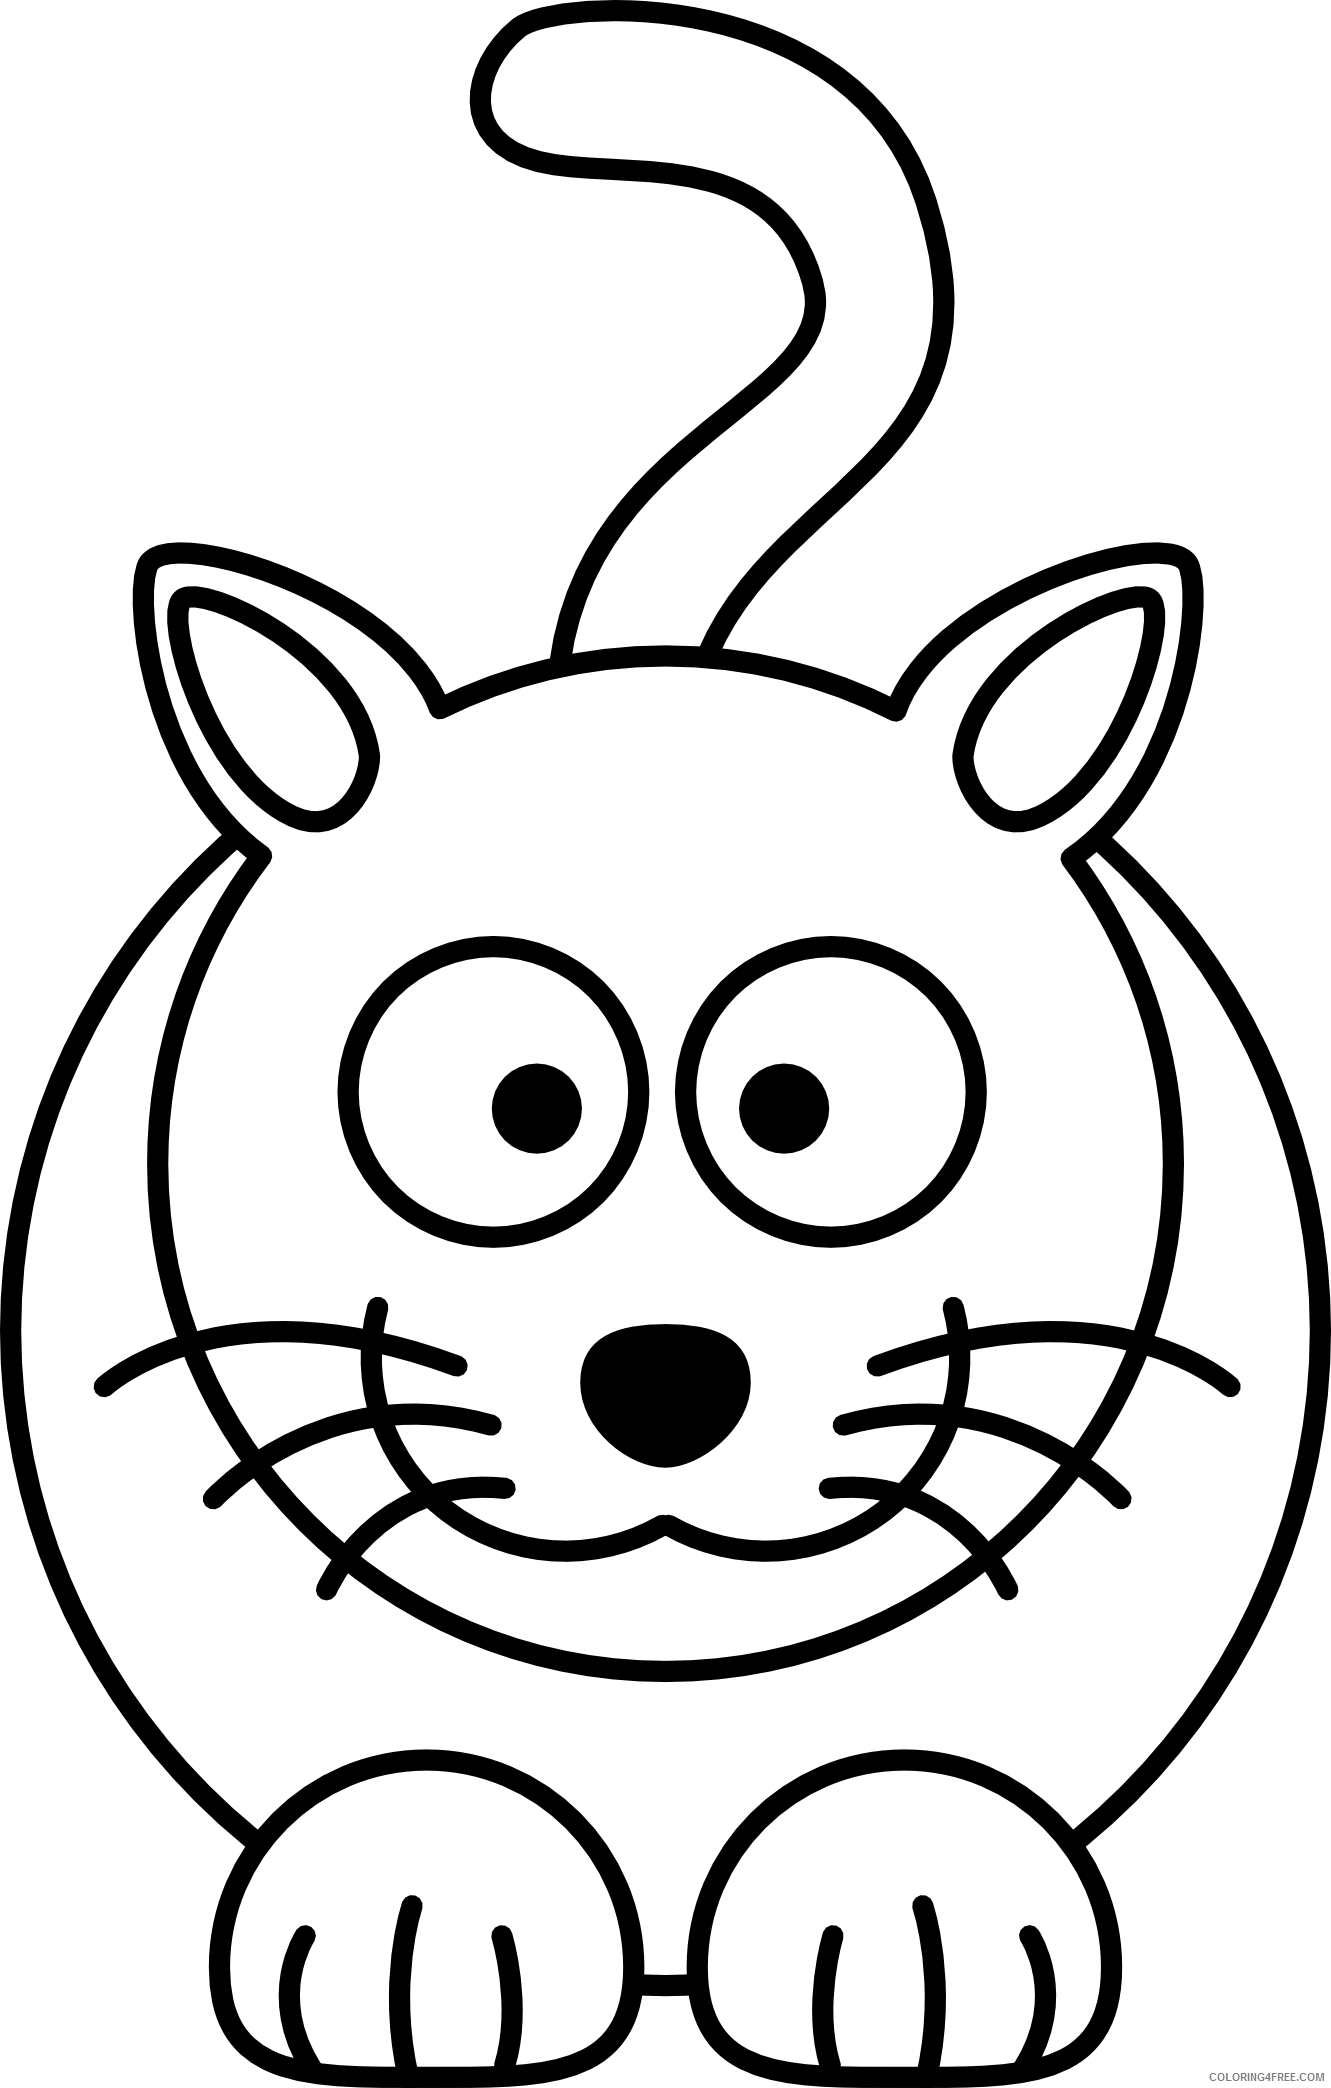 Cat Outline Coloring Pages lemmling cartoon cat black white Printable Coloring4free